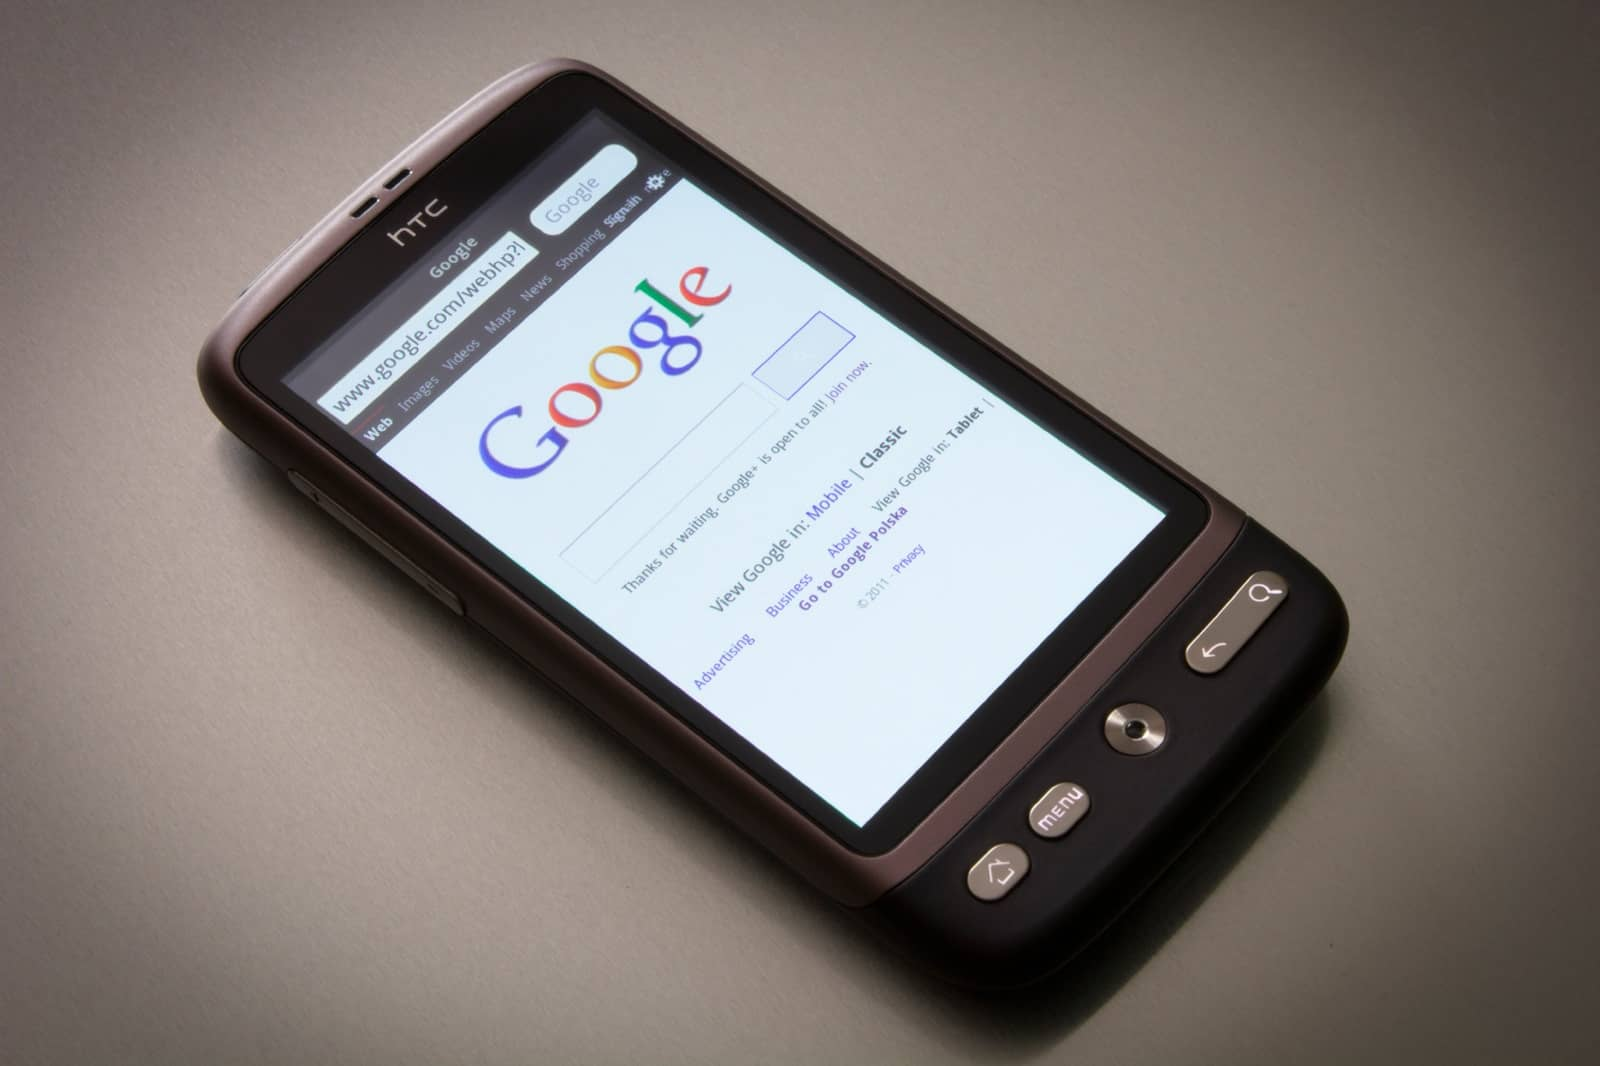 Google displayed on a mobile phone